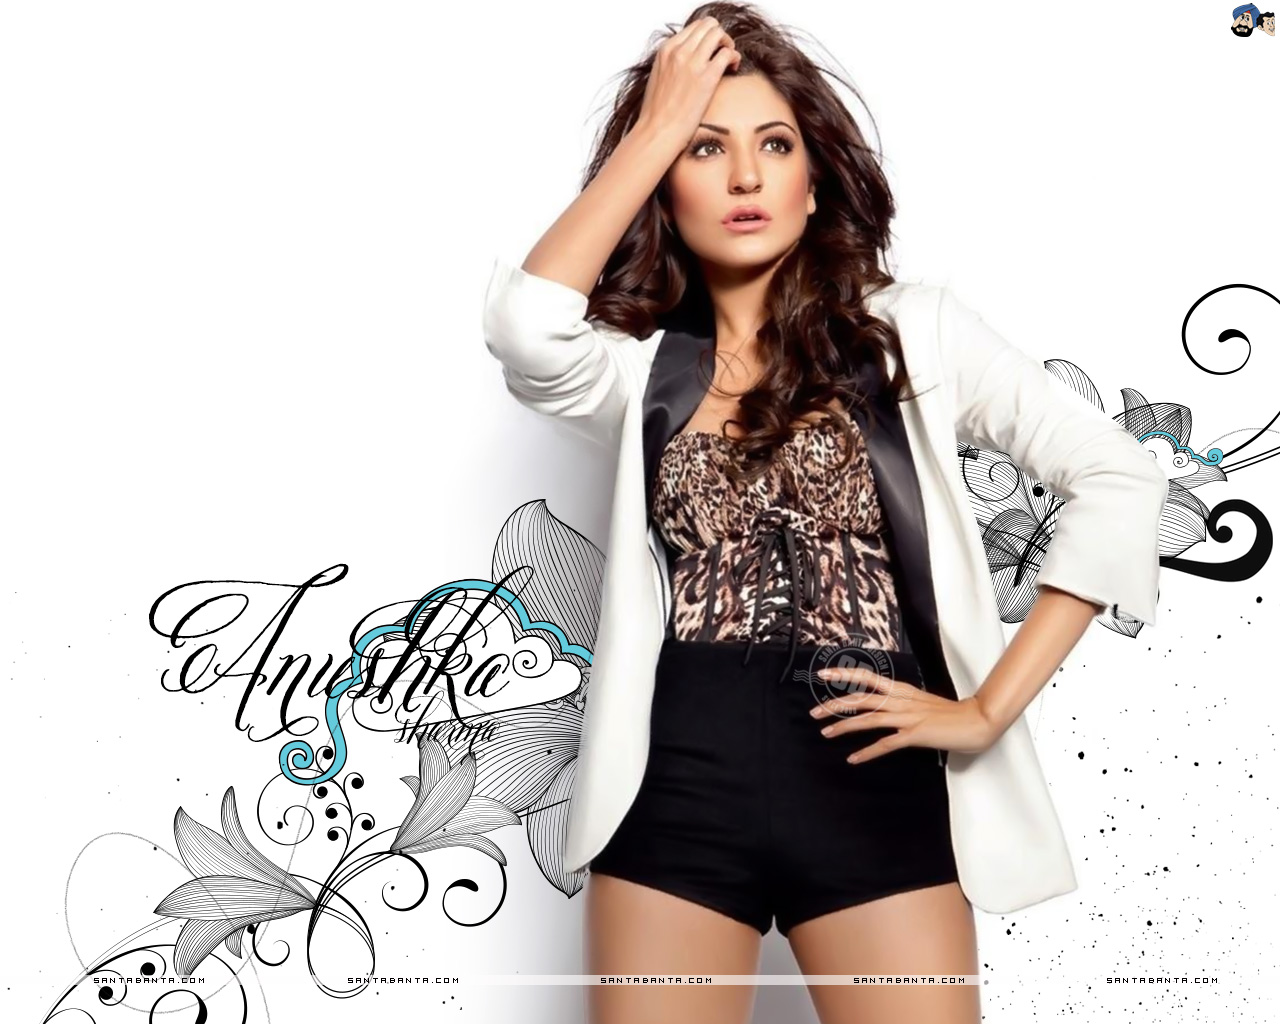 HD Wallpaper Images Collection Of Anushka Sharma HQ